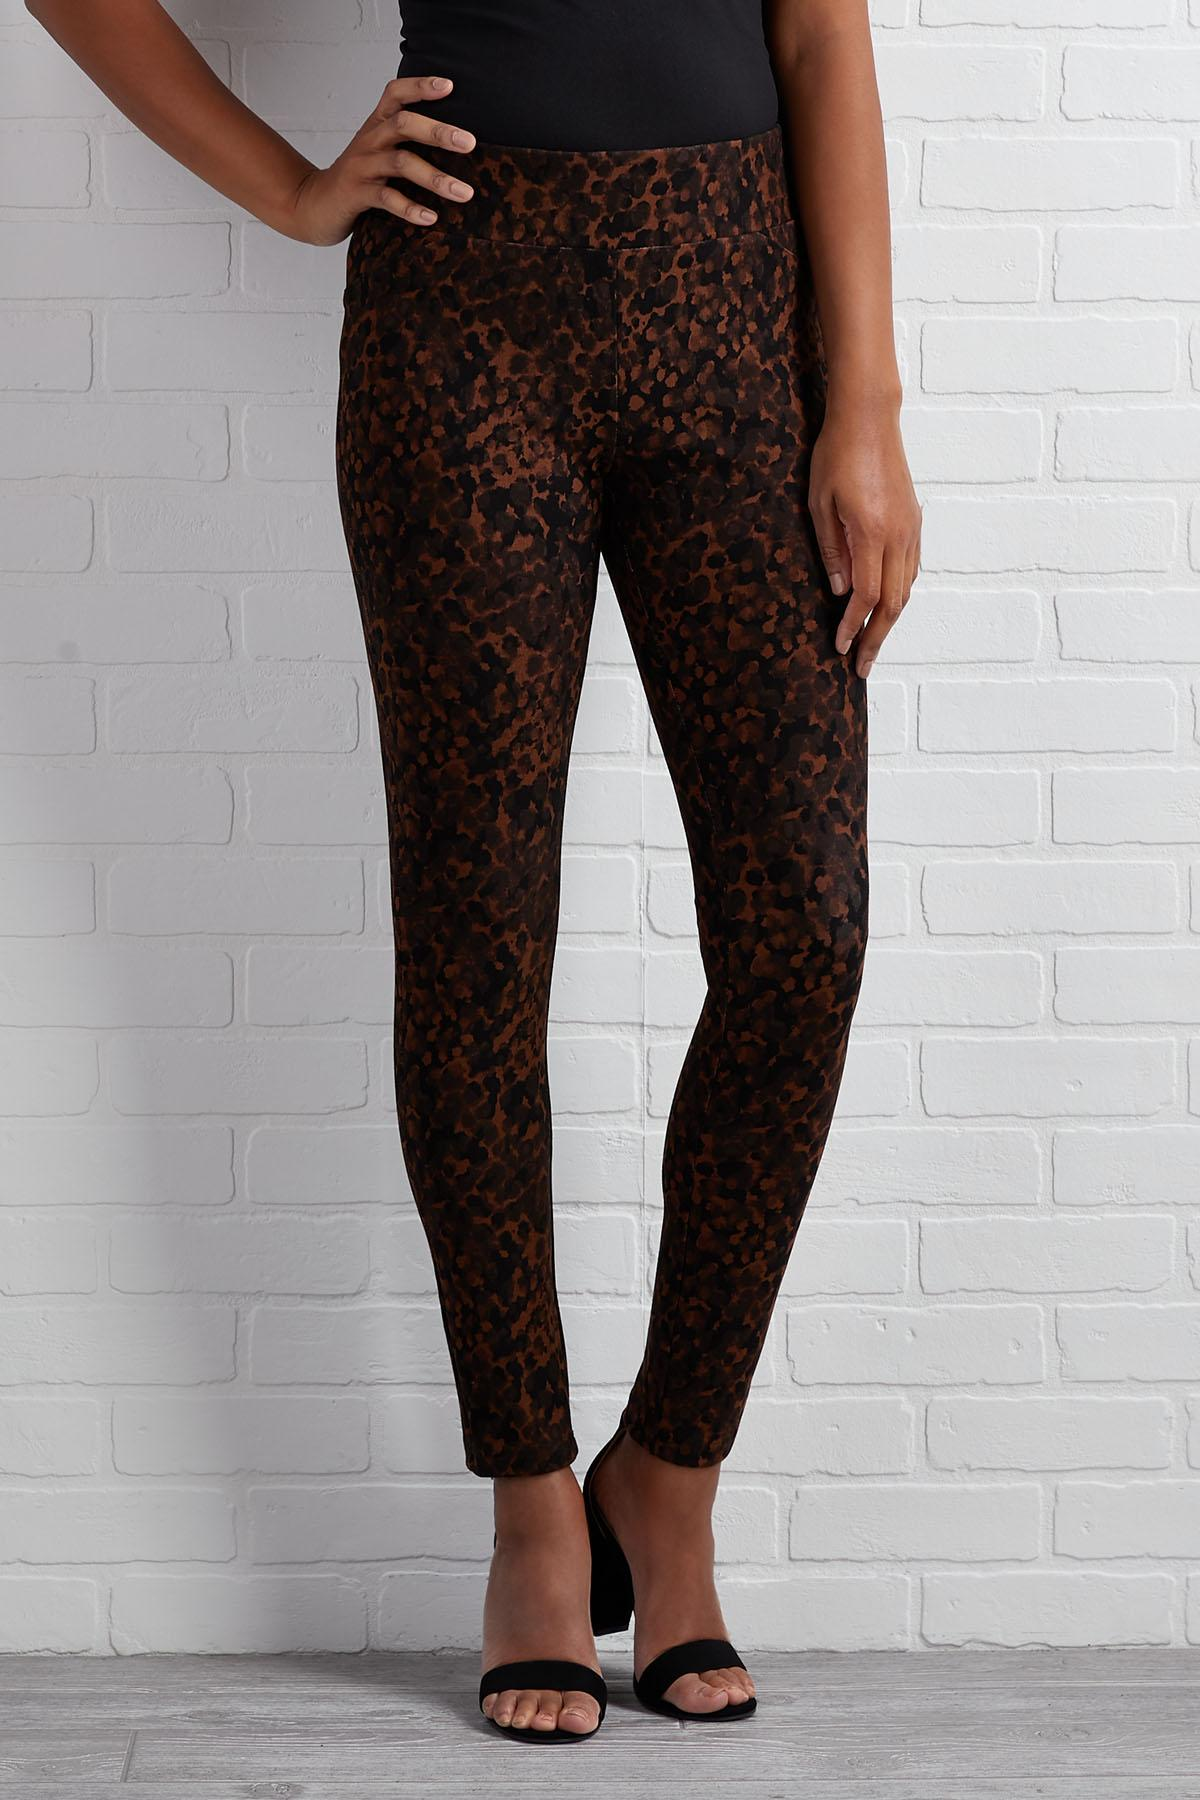 Dressed To Purrfection Leggings